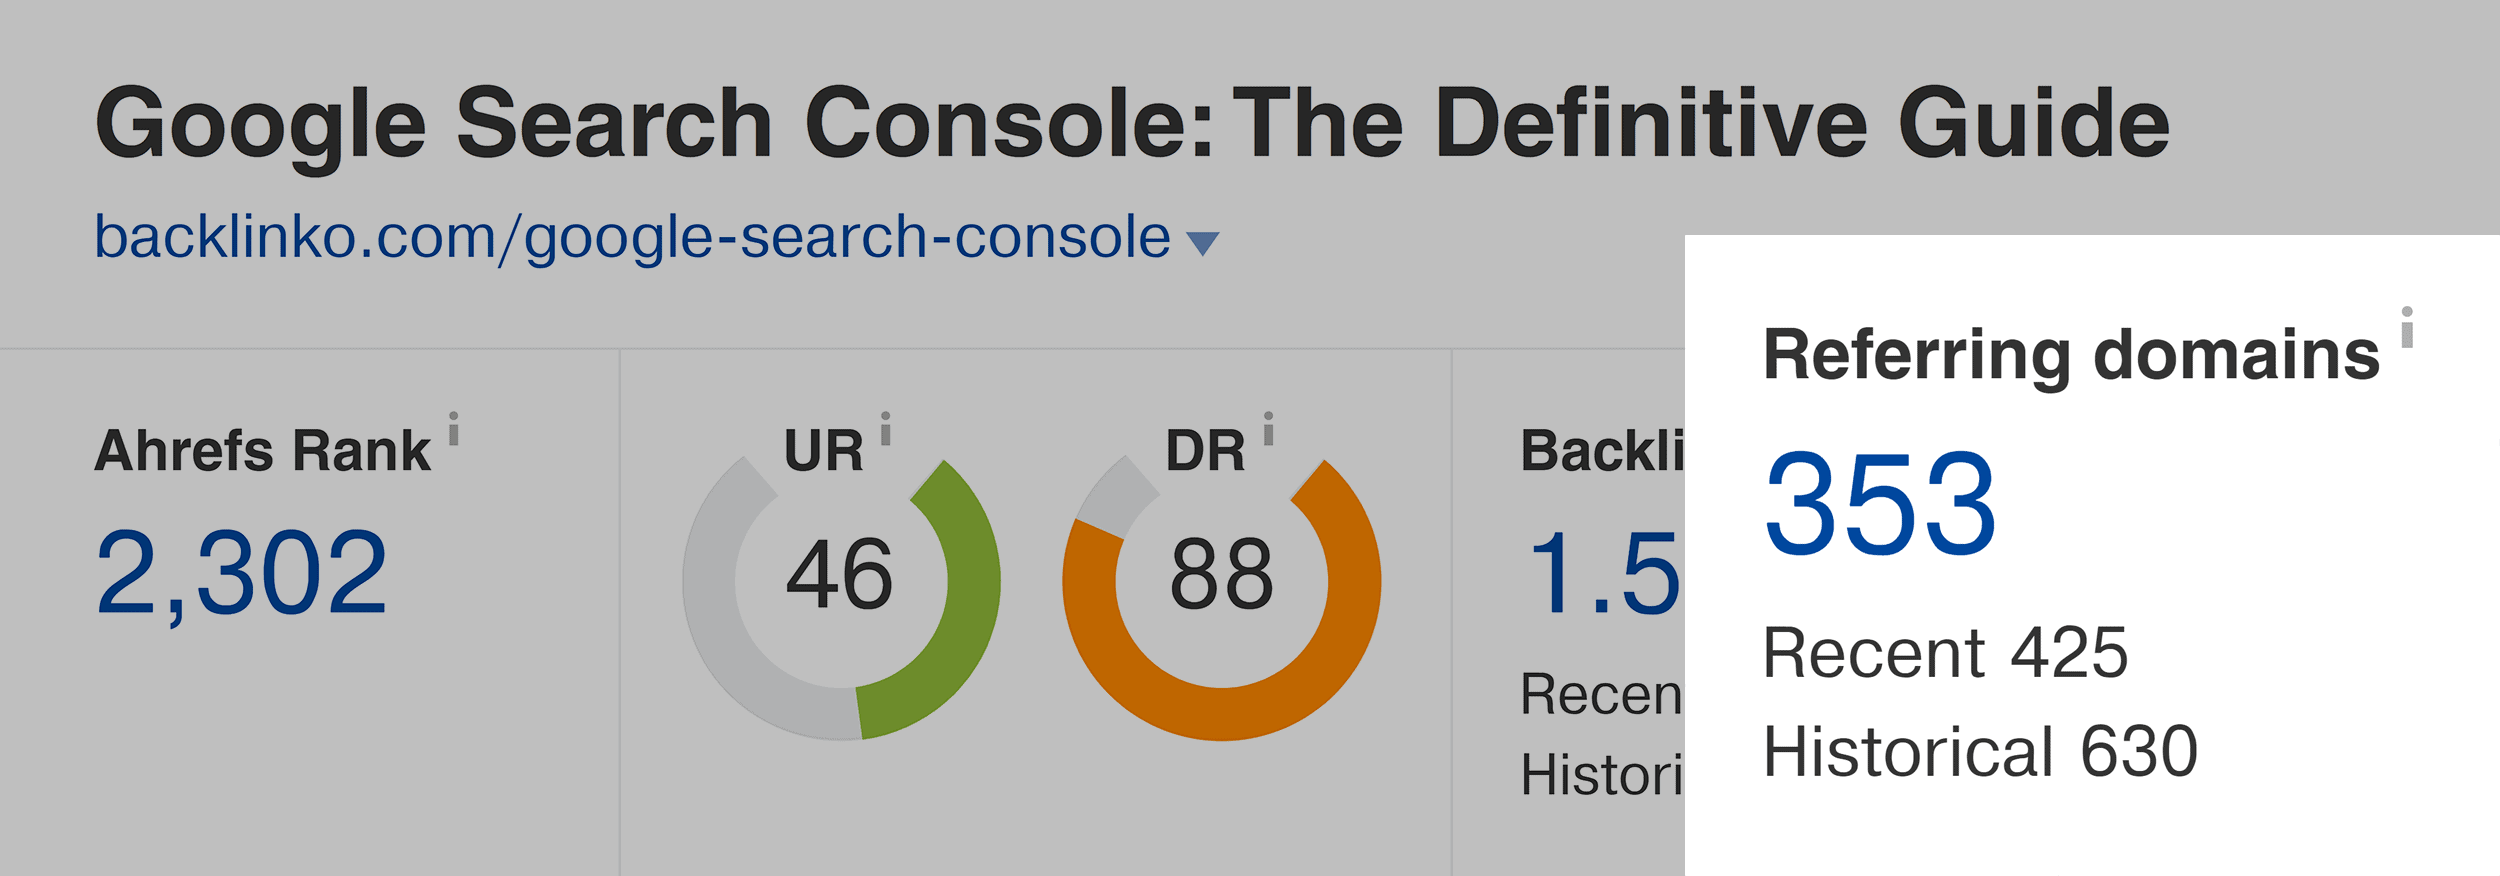 Ahrefs – Google Search Console – Referring domains